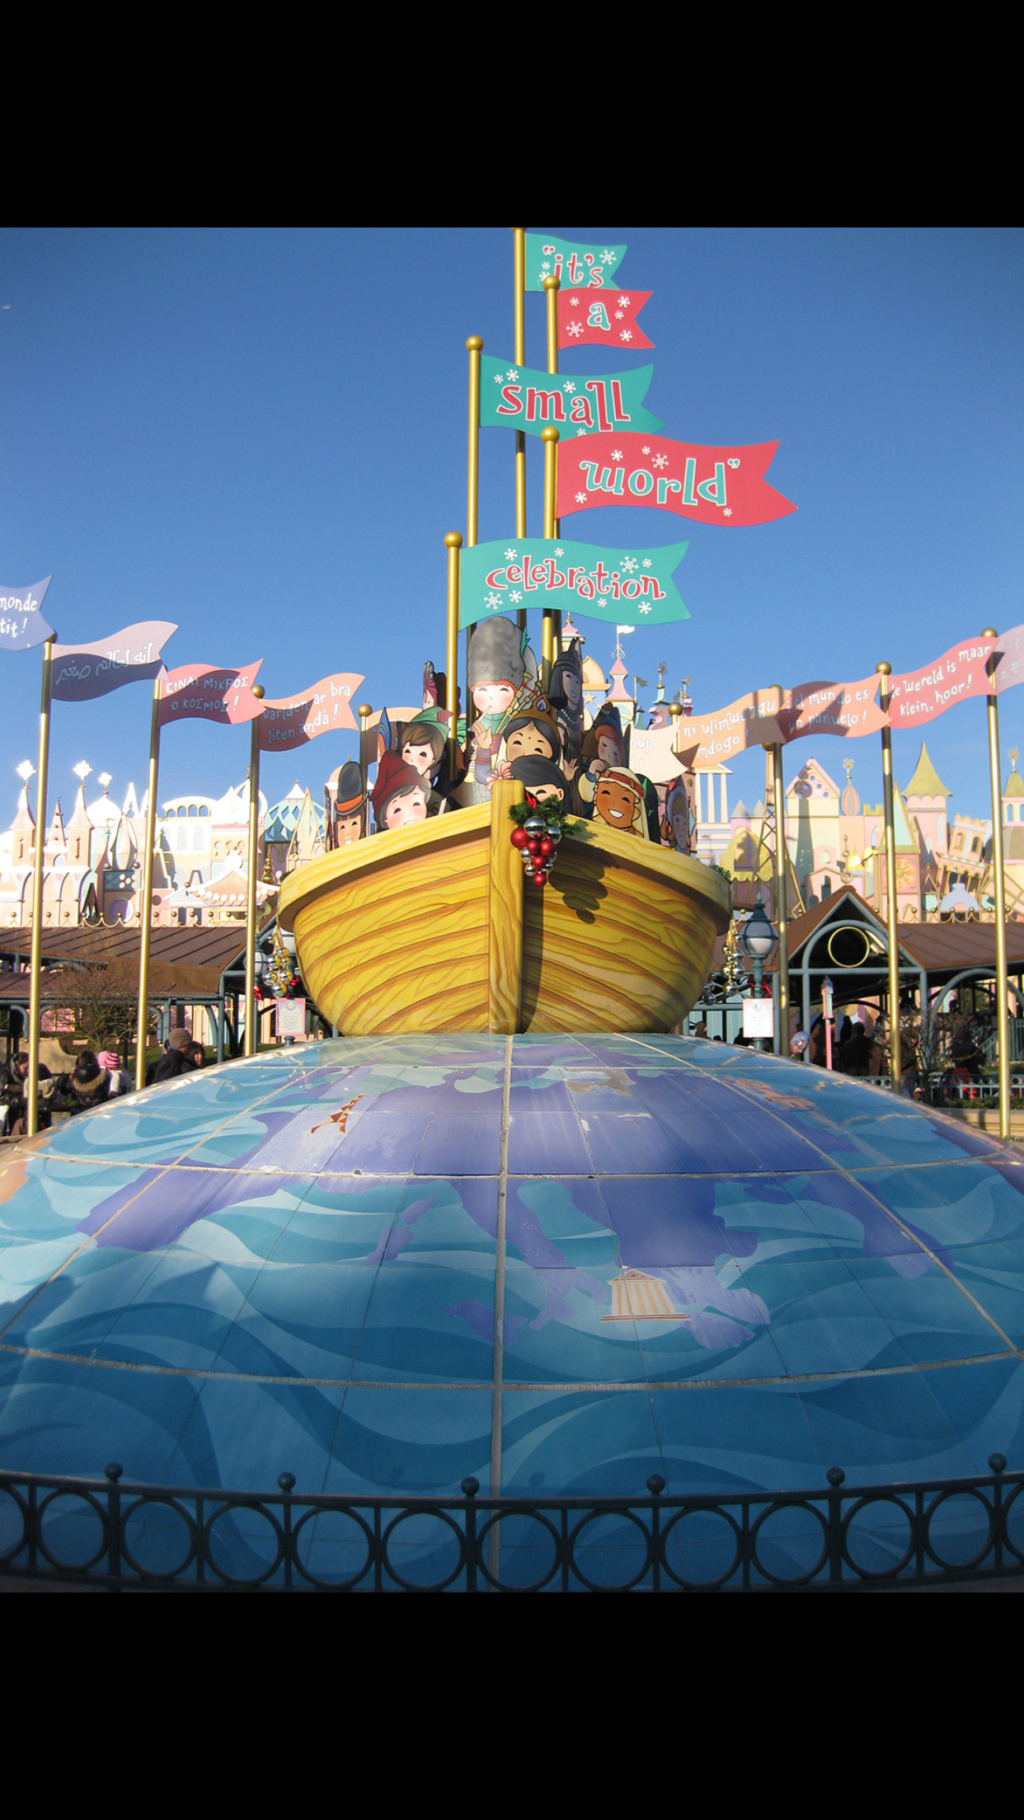 "Réhabilitation de ""it's a small world"" (du 27 juillet au 18 décembre 2015 inclus) - Page 33 9555c310"